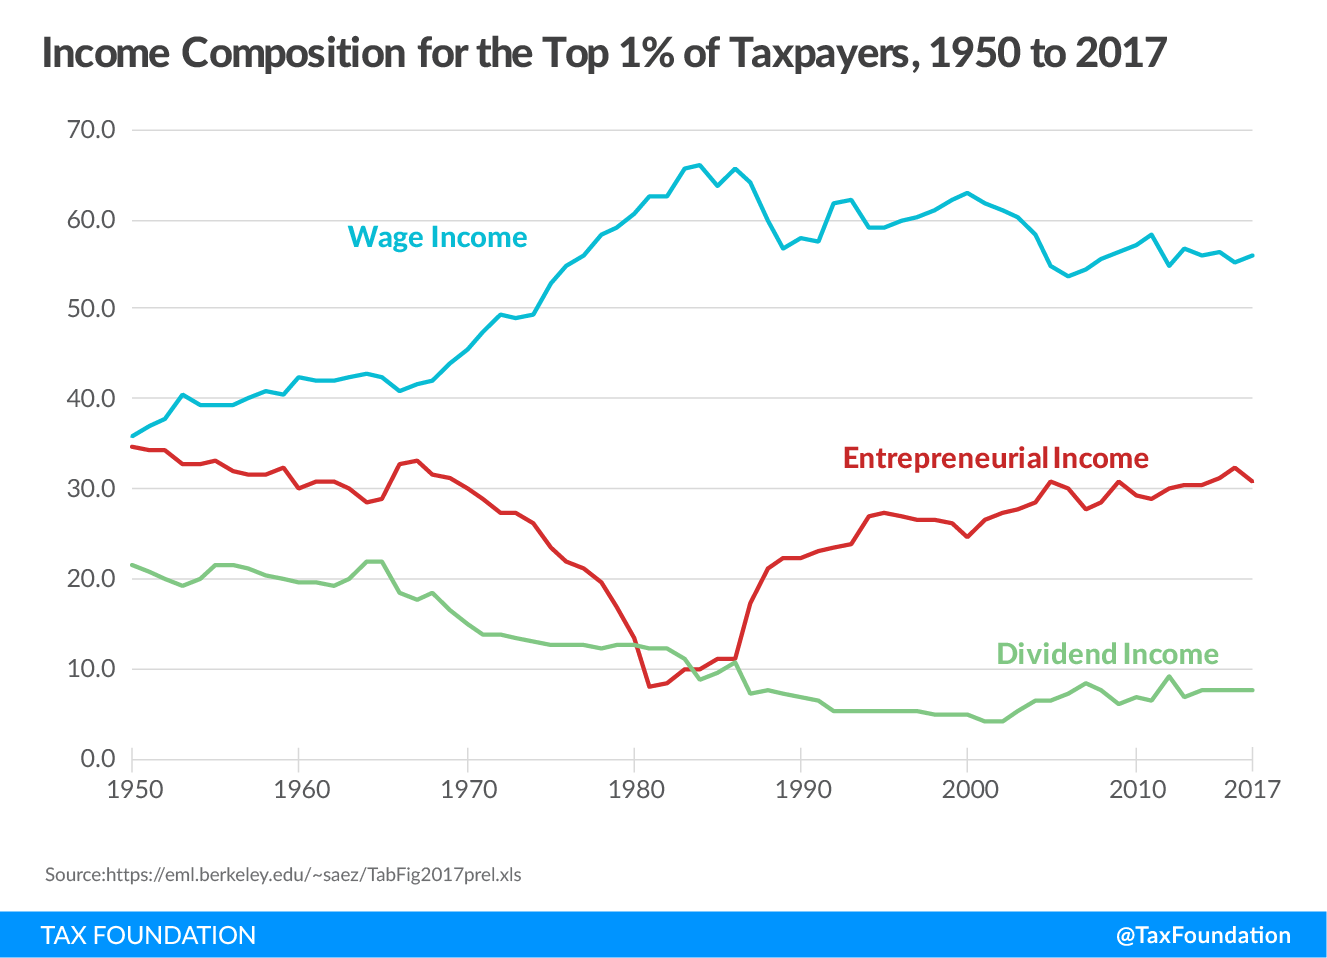 Income Composition for the top 1% of taxpayers, 1950 to 2017, Income inequality, progressive tax code, U.S. income tax code Saez and Zucman 70 percent tax rate